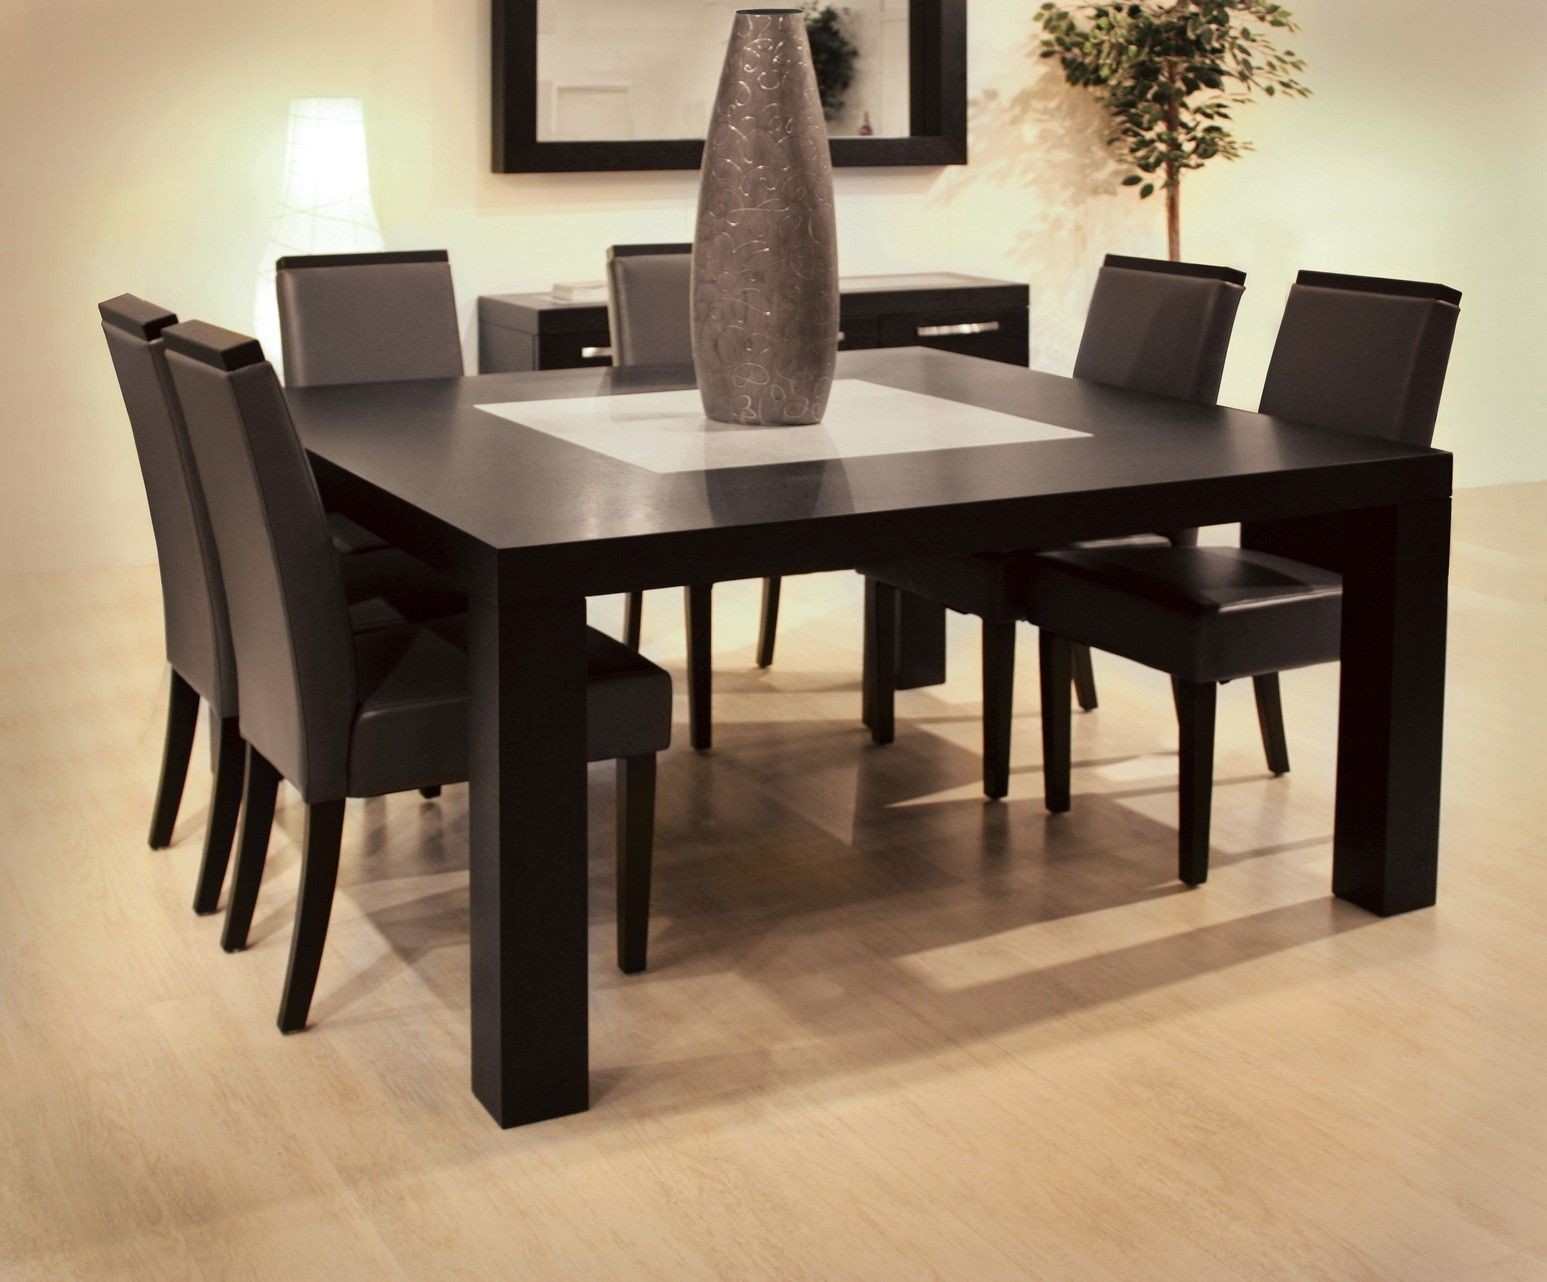 White marble meeting table combined with - Dining Table Sets Wood Modern